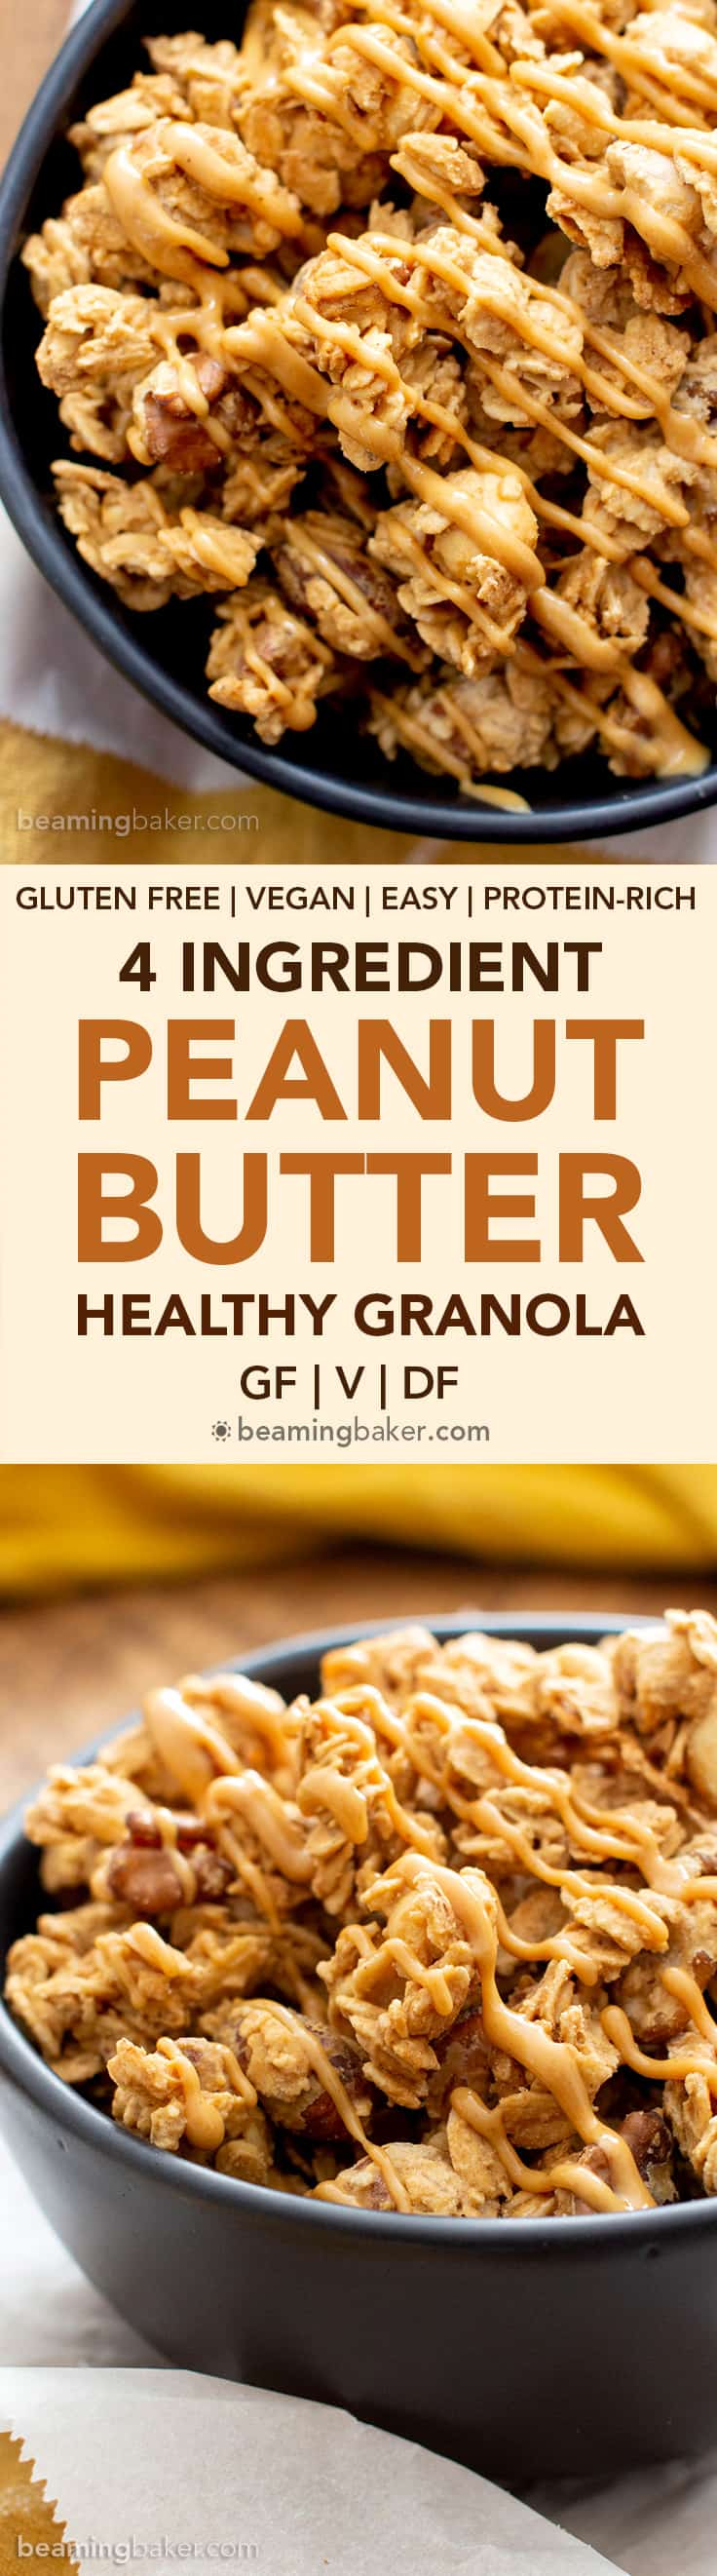 4 Ingredient Healthy Peanut Butter Granola Recipe (V, GF): this homemade peanut butter granola recipe is so easy & healthy! It's crunchy with big clusters, salty, sweet and vegan, gluten-free, protein-rich! #Vegan #GlutenFree #PeanutButter #Granola | Recipe at BeamingBaker.com